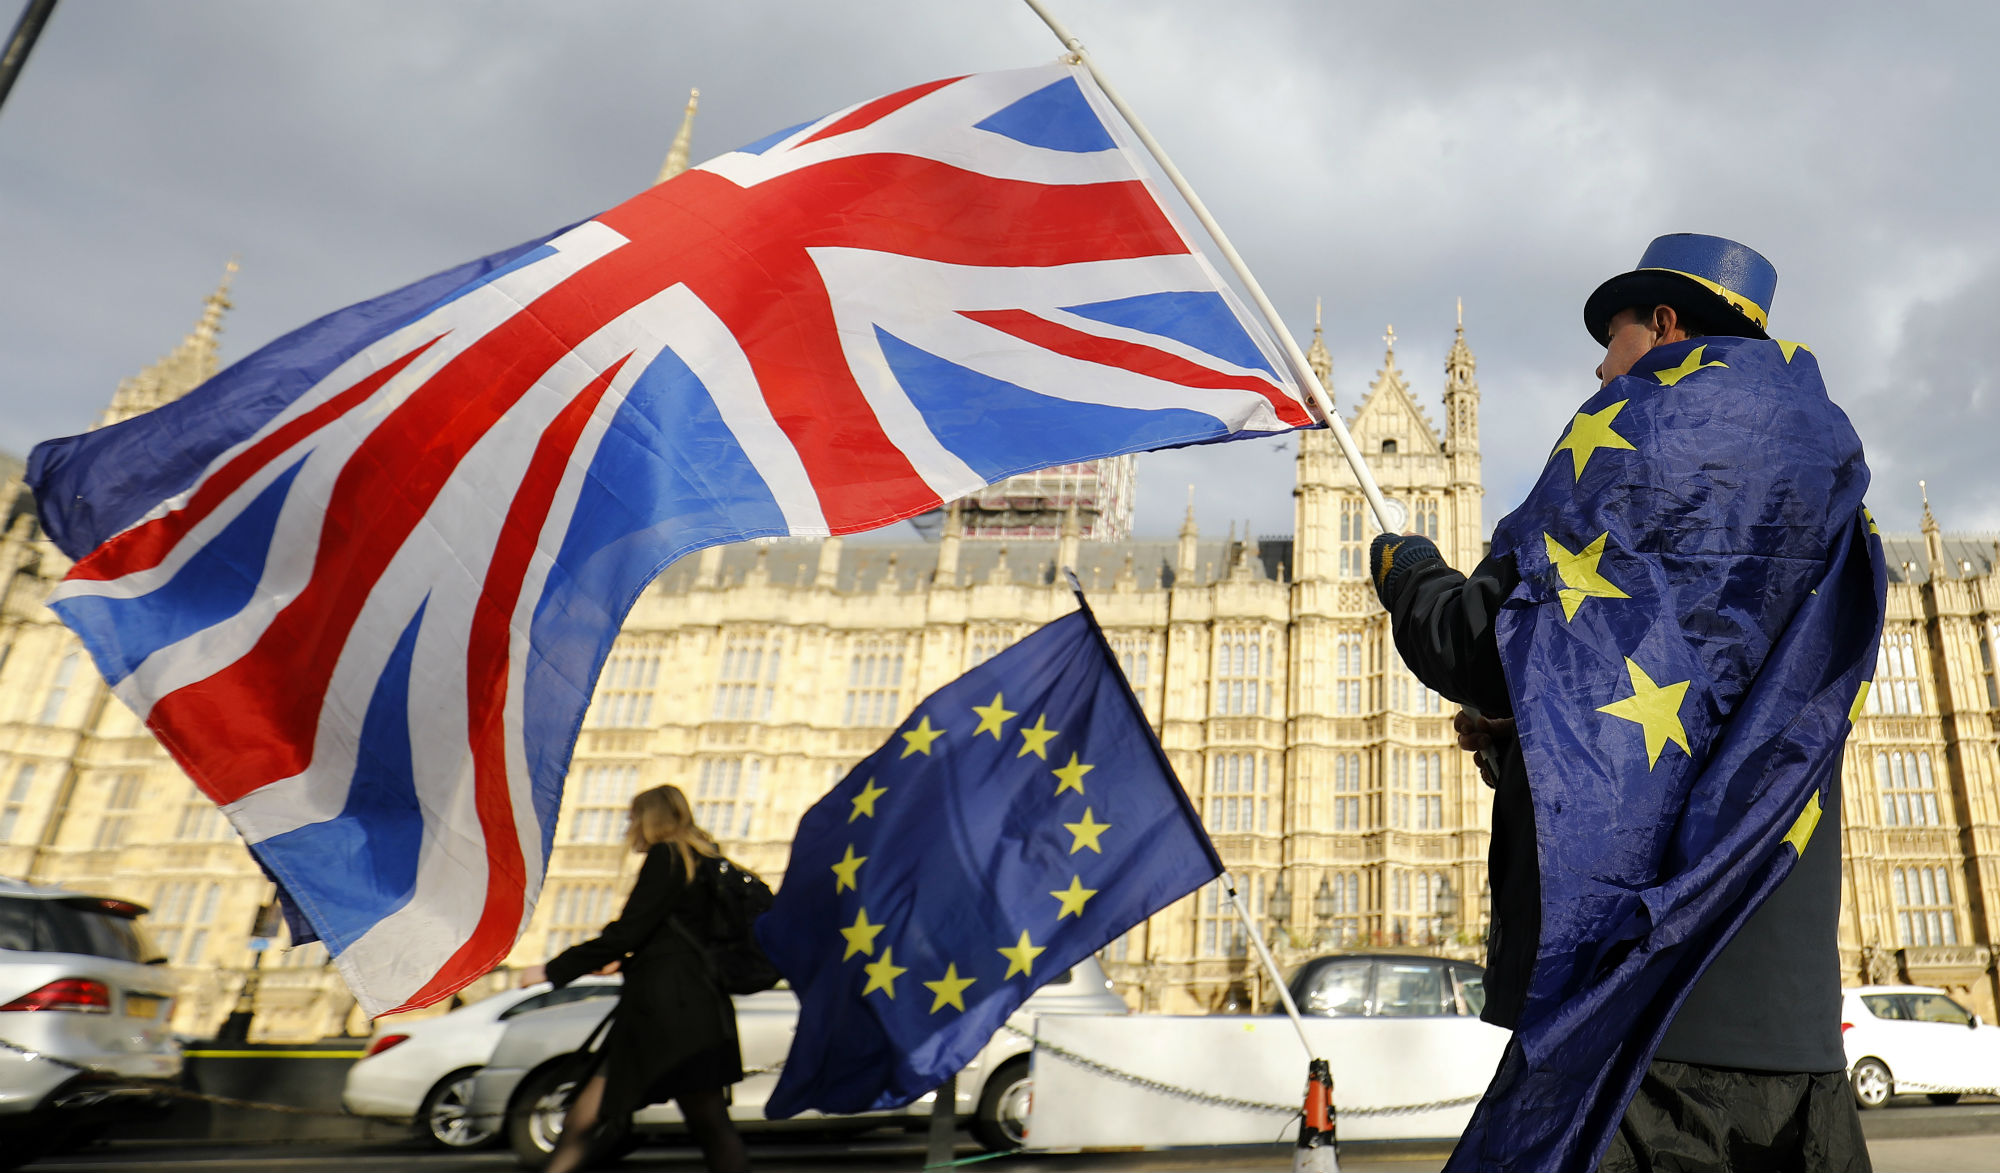 An anti-Brexit demonstrator waves a Union flag alongside a European Union flag outside the Houses of Parliament in London on March 28, 2018. Tolga Akmen/AFP via Getty Images